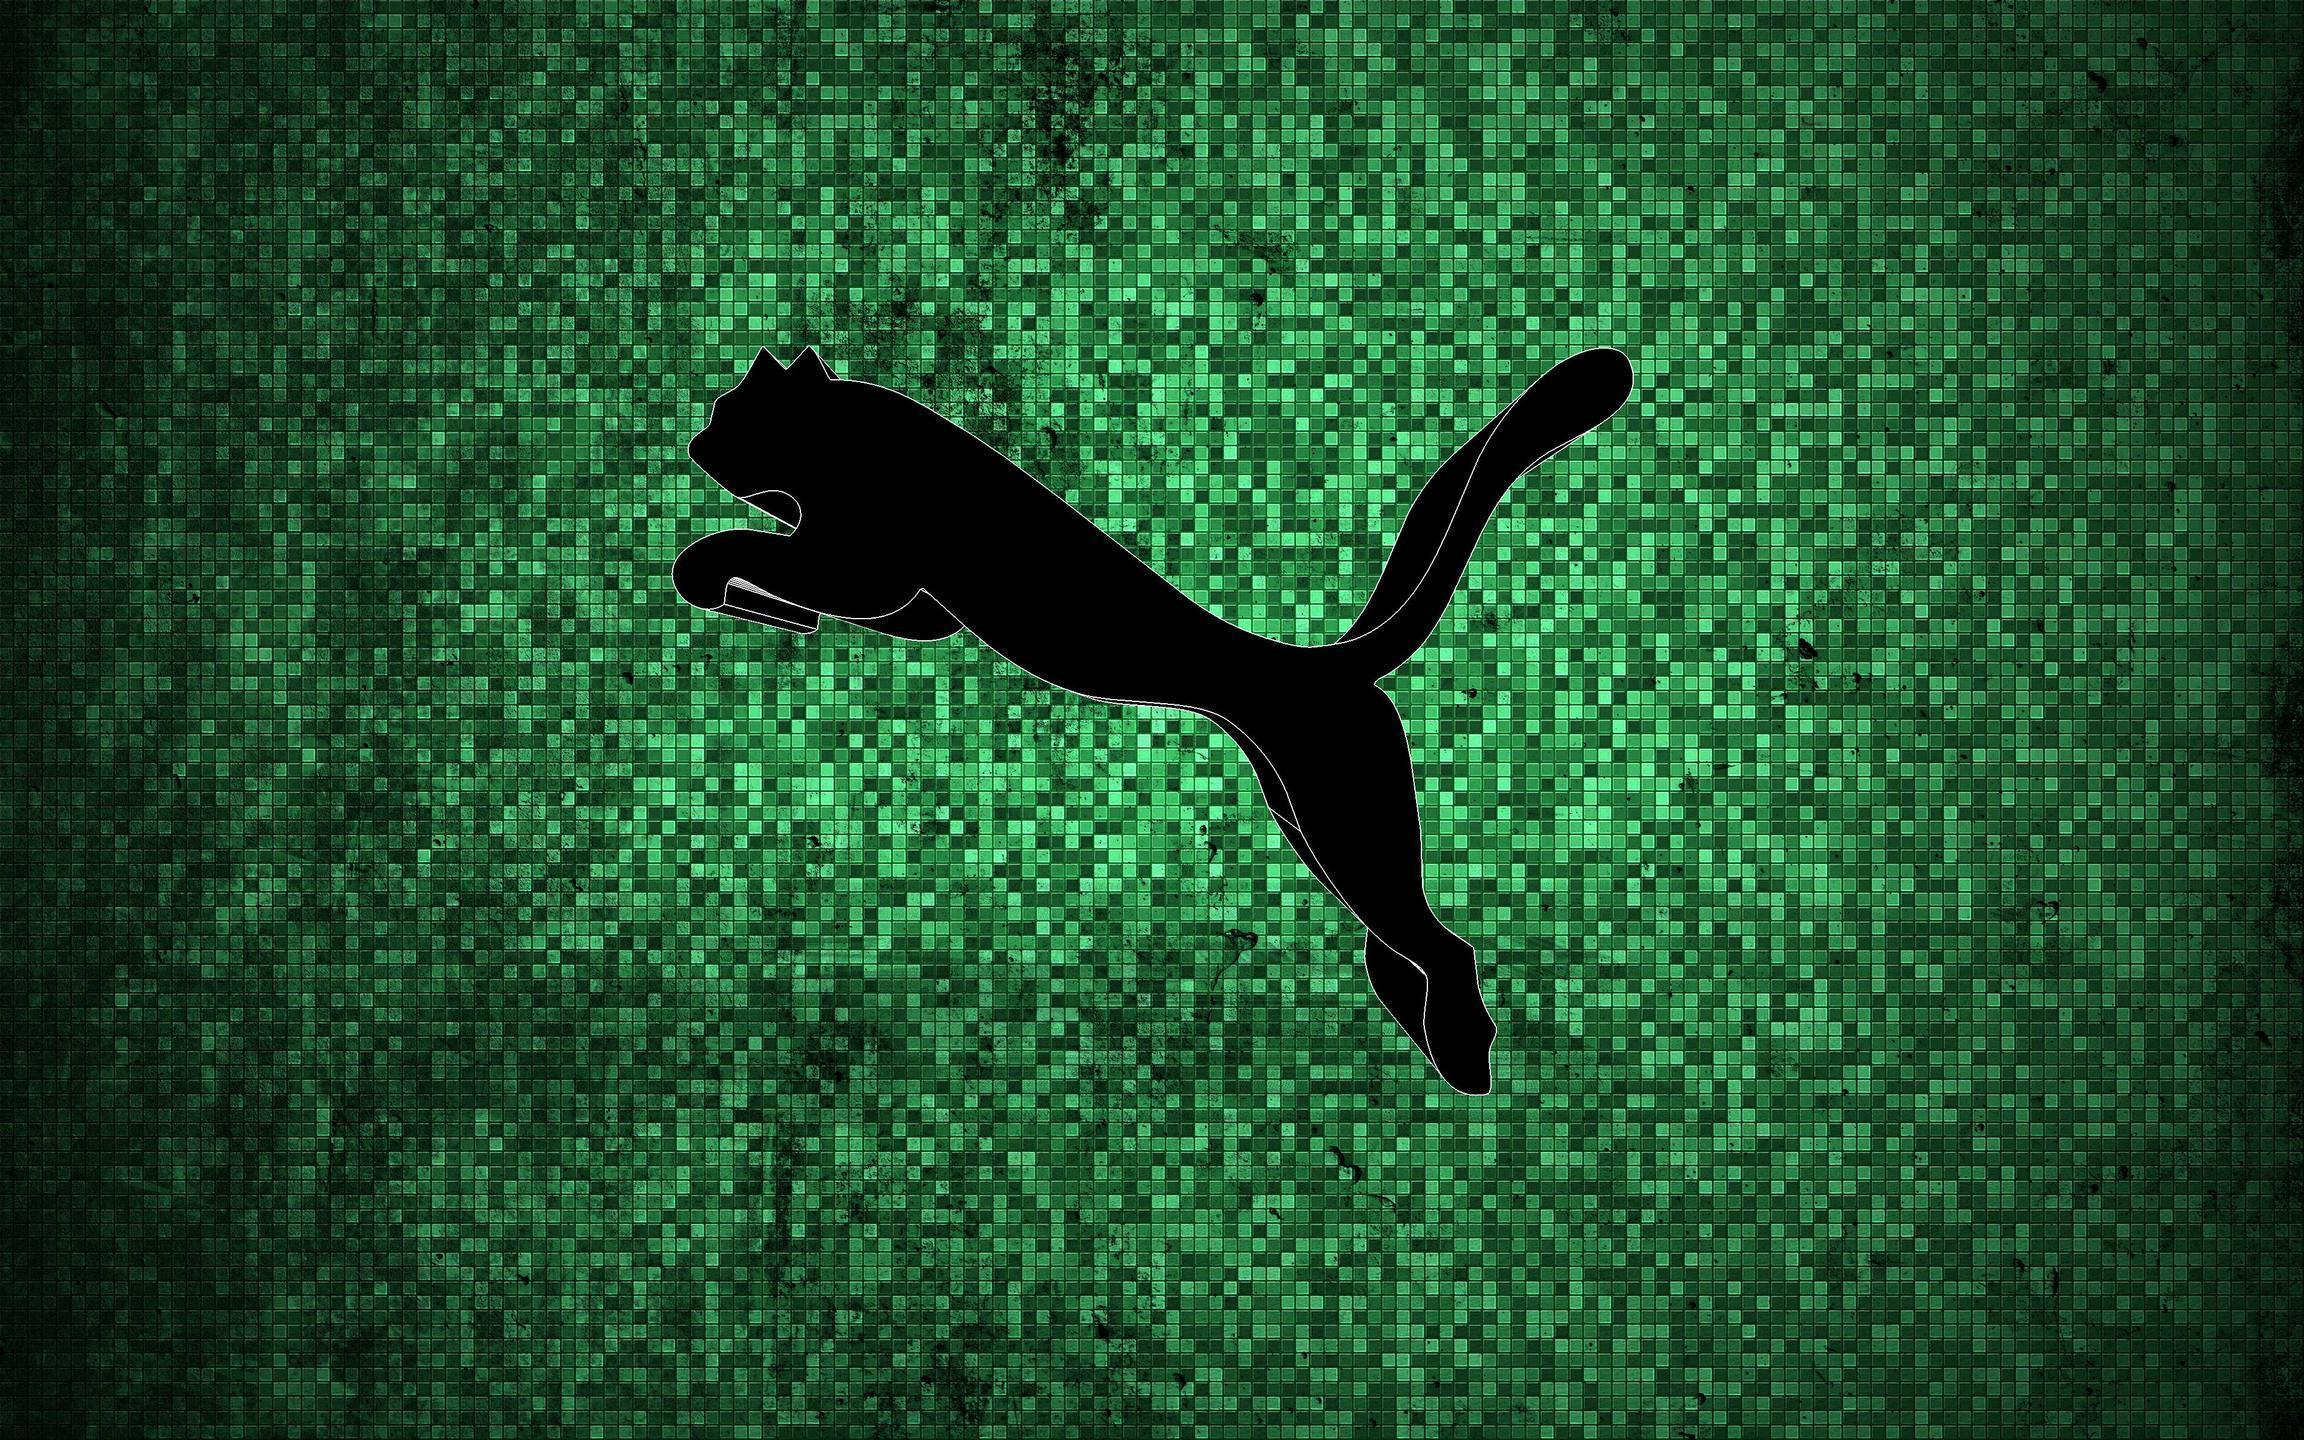 Puma Logo Wallpapers - Wallpaper Cave